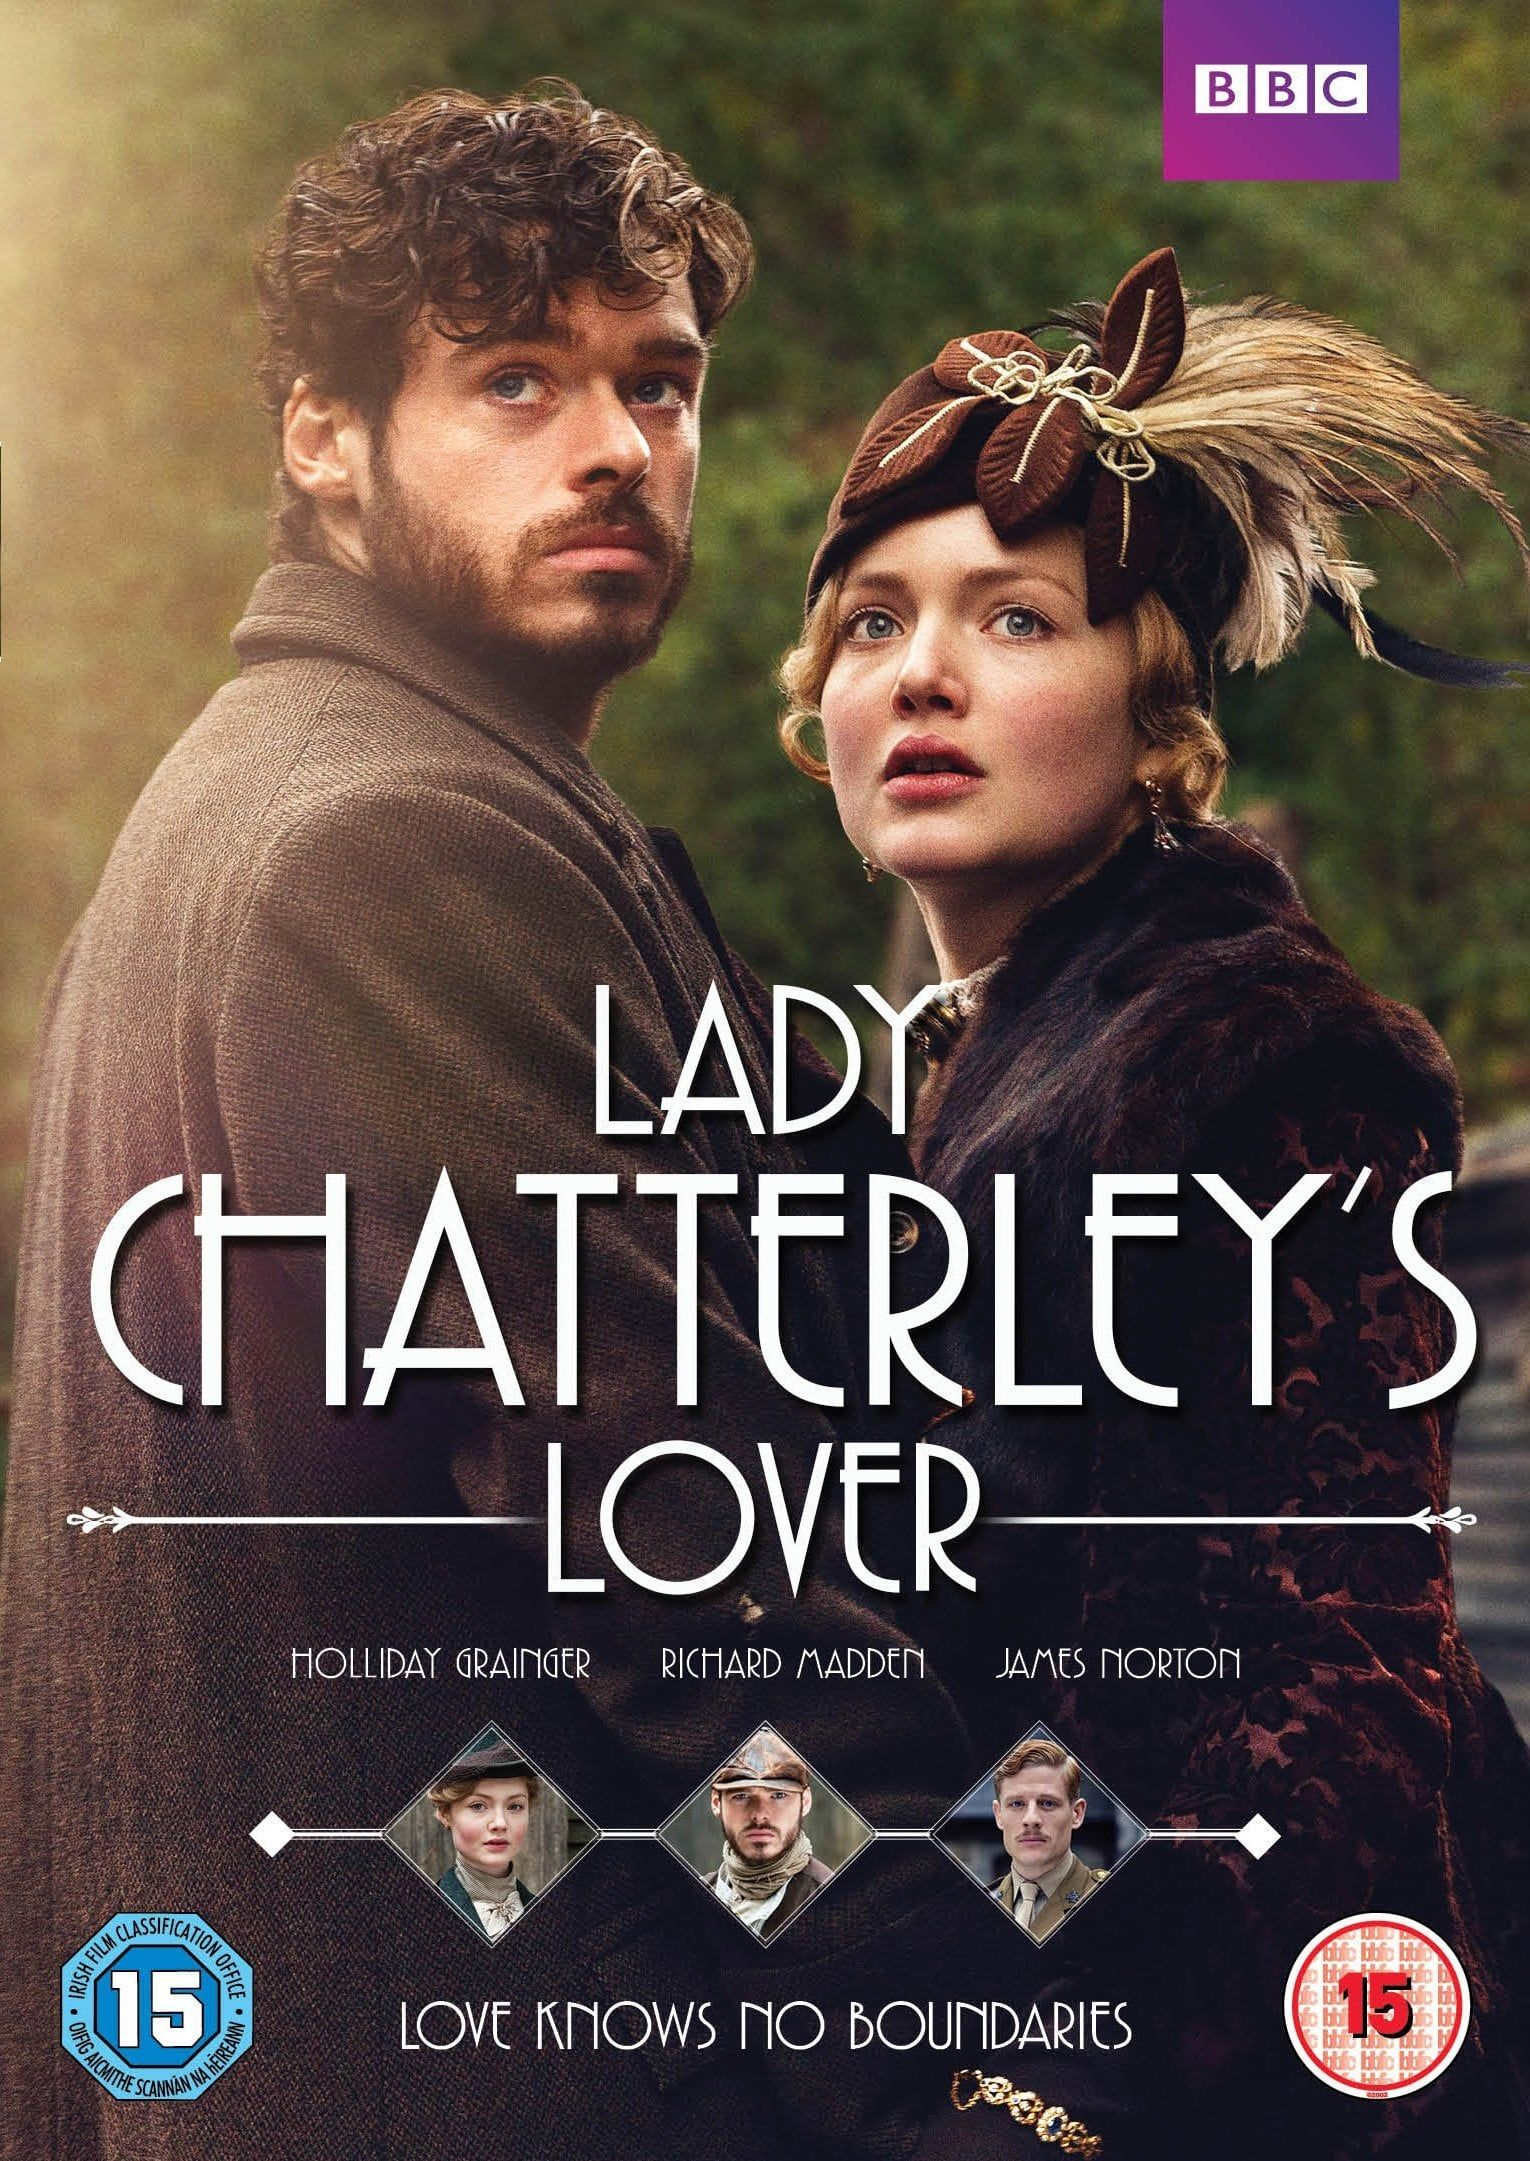 Lady Chatterley S Lover P E L I C U L A Completa 2015 En Espanol Latino Ladychatterley Slover Movie Full Movies Online Free Movies Online Movies To Watch